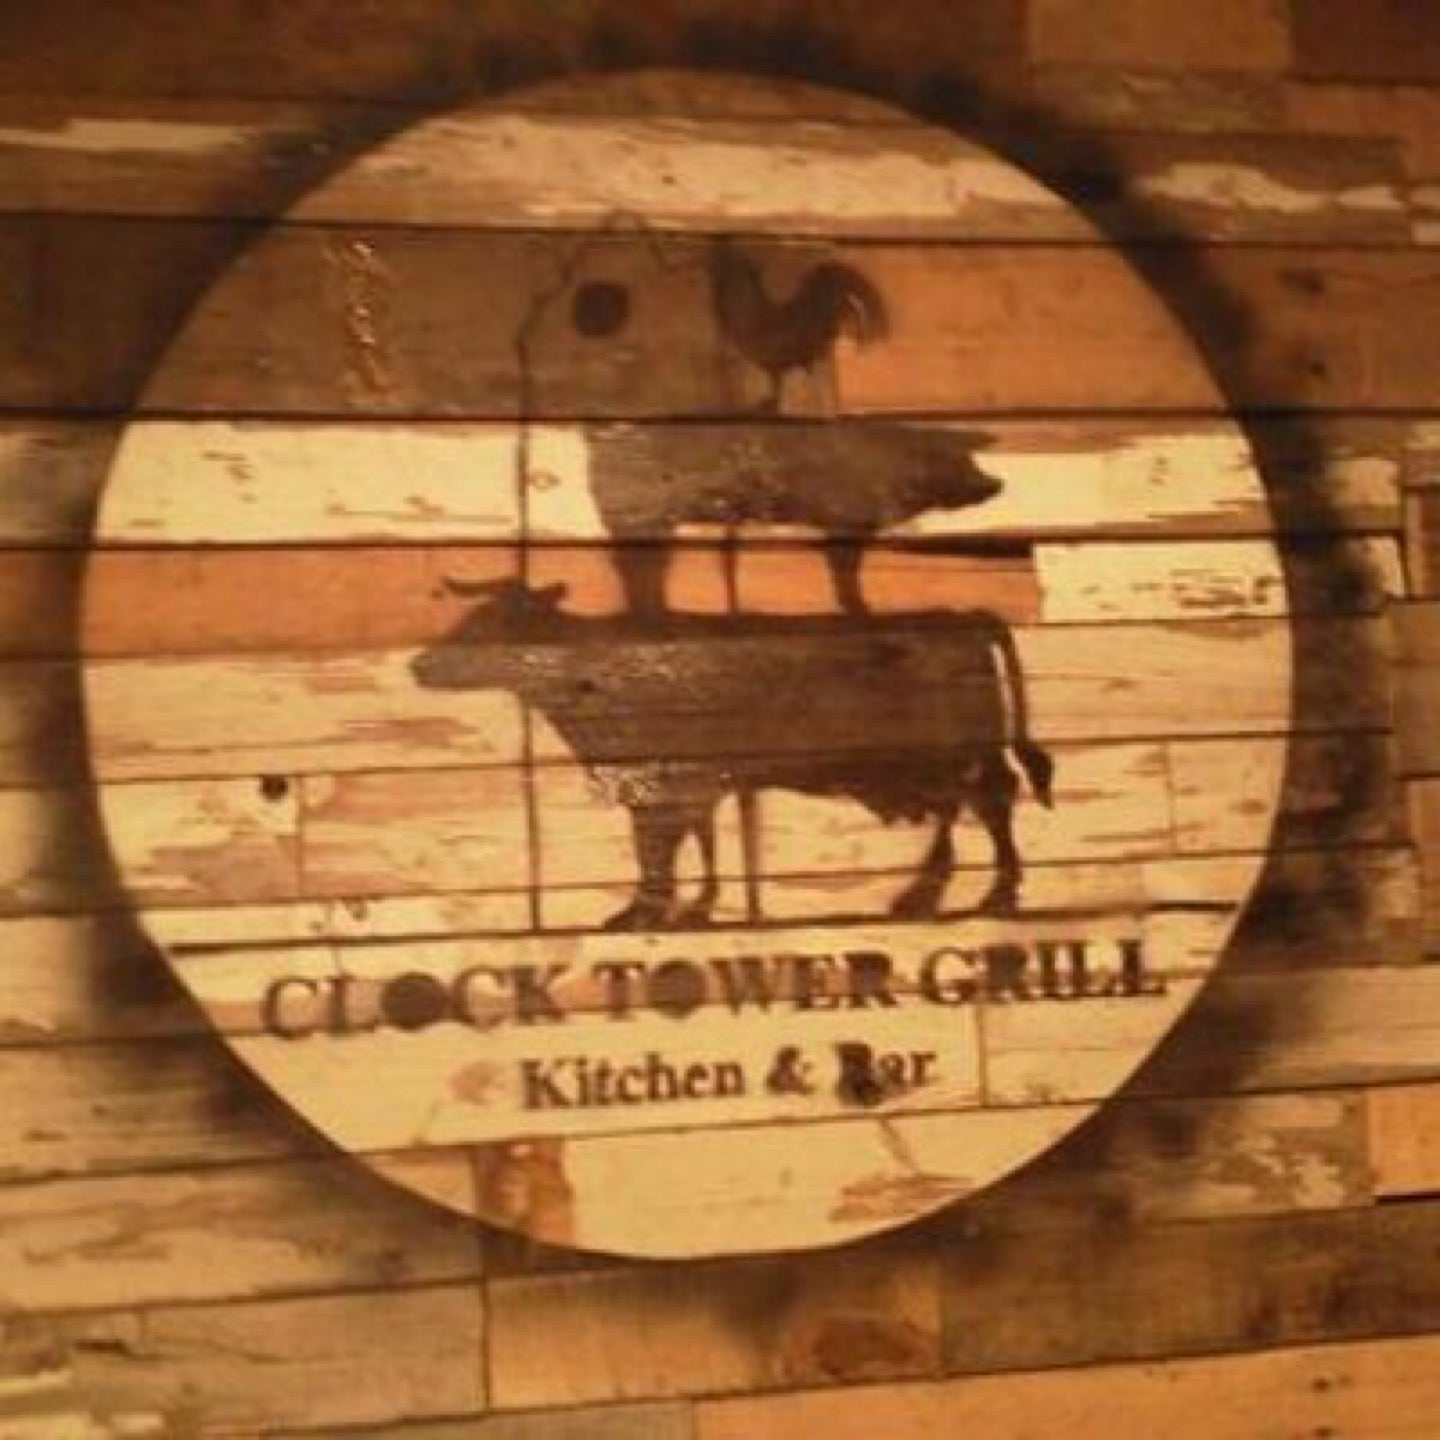 151 Grill & Bar,farm to table